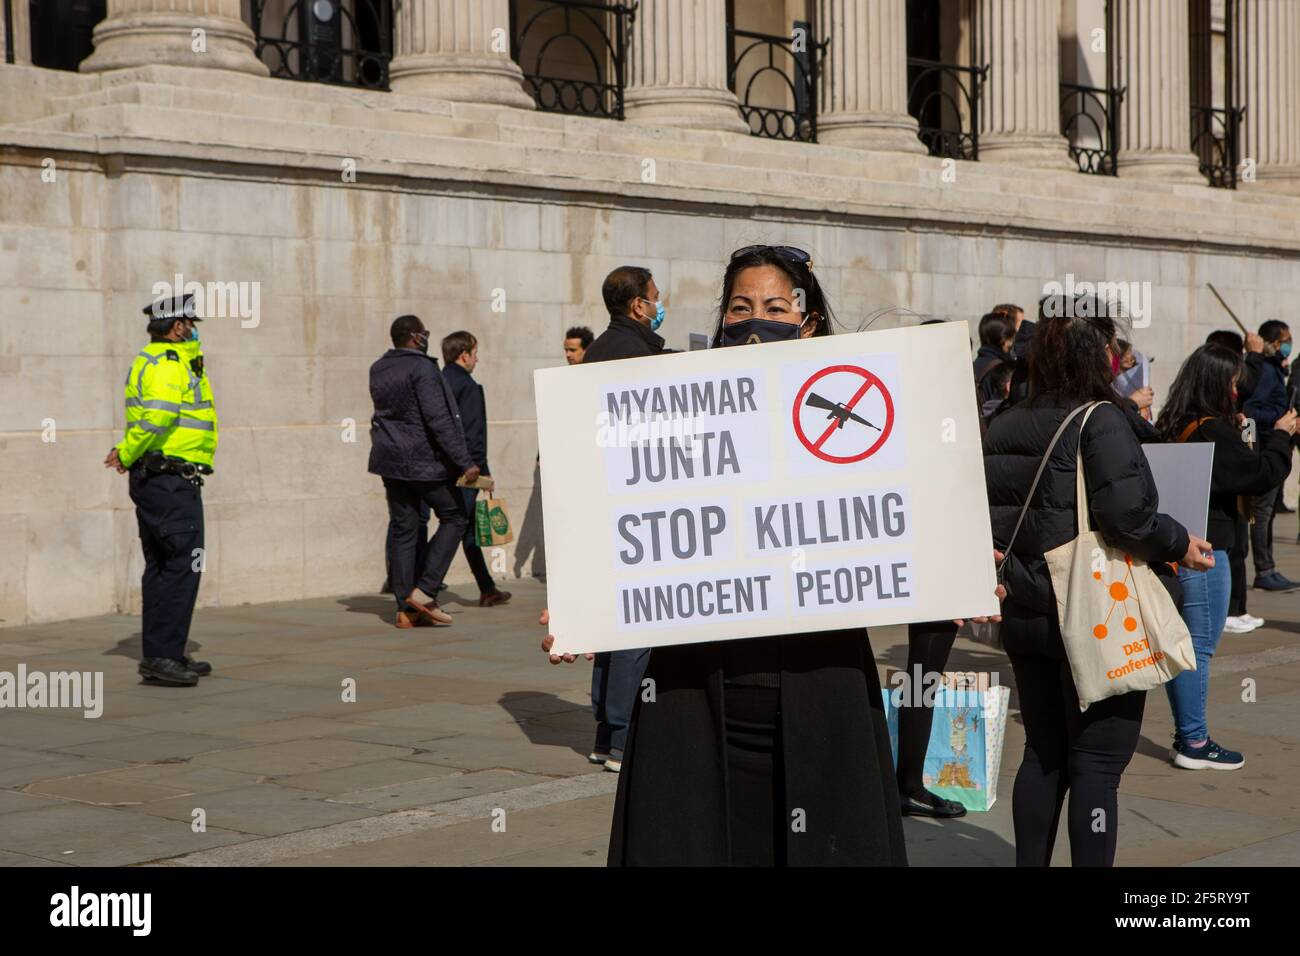 A protester holding a placard expressing her opinion during a peaceful demonstration.Myanmar anti military coup protesters gathered at Trafalgar Square as dozens more are killed in the country. Myanmar police and military soldiers (tatmadow) attacked protesters with rubber bullets, live ammunition, tear gas and stun bombs in response to anti-military coup protesters on Saturday in Myanmar, killing more than 90 people and injured many others. At least 300 people have been killed in Myanmar since the 1 February coup, a UN human rights official has said. Myanmar's military detained State Counsell Stock Photo